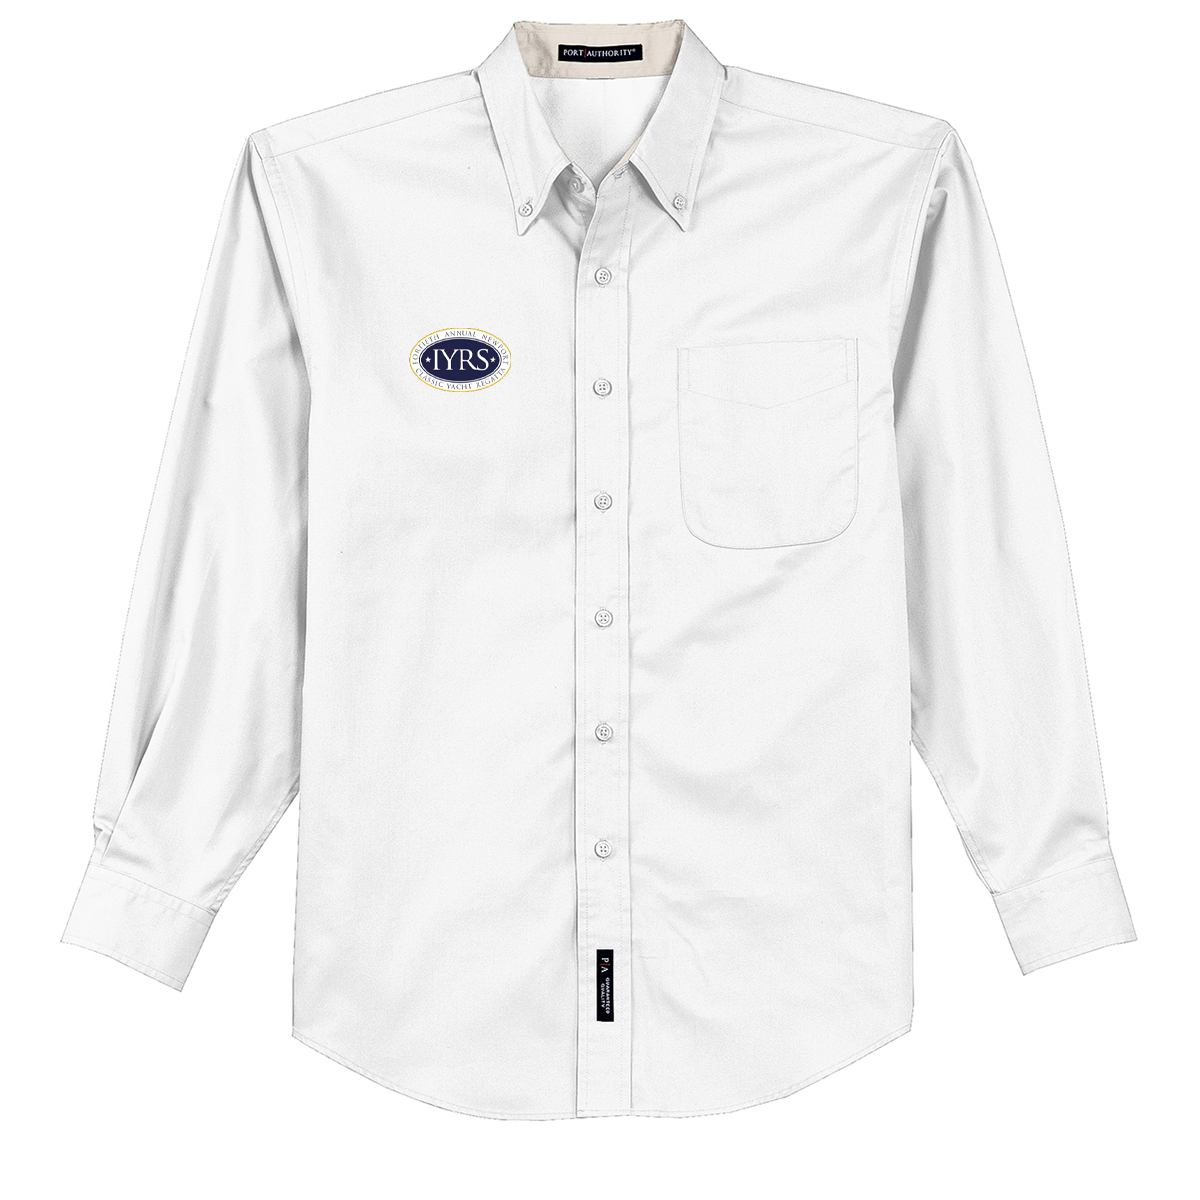 Classic Yacht Owners Regatta- Men's Button Down Shirt